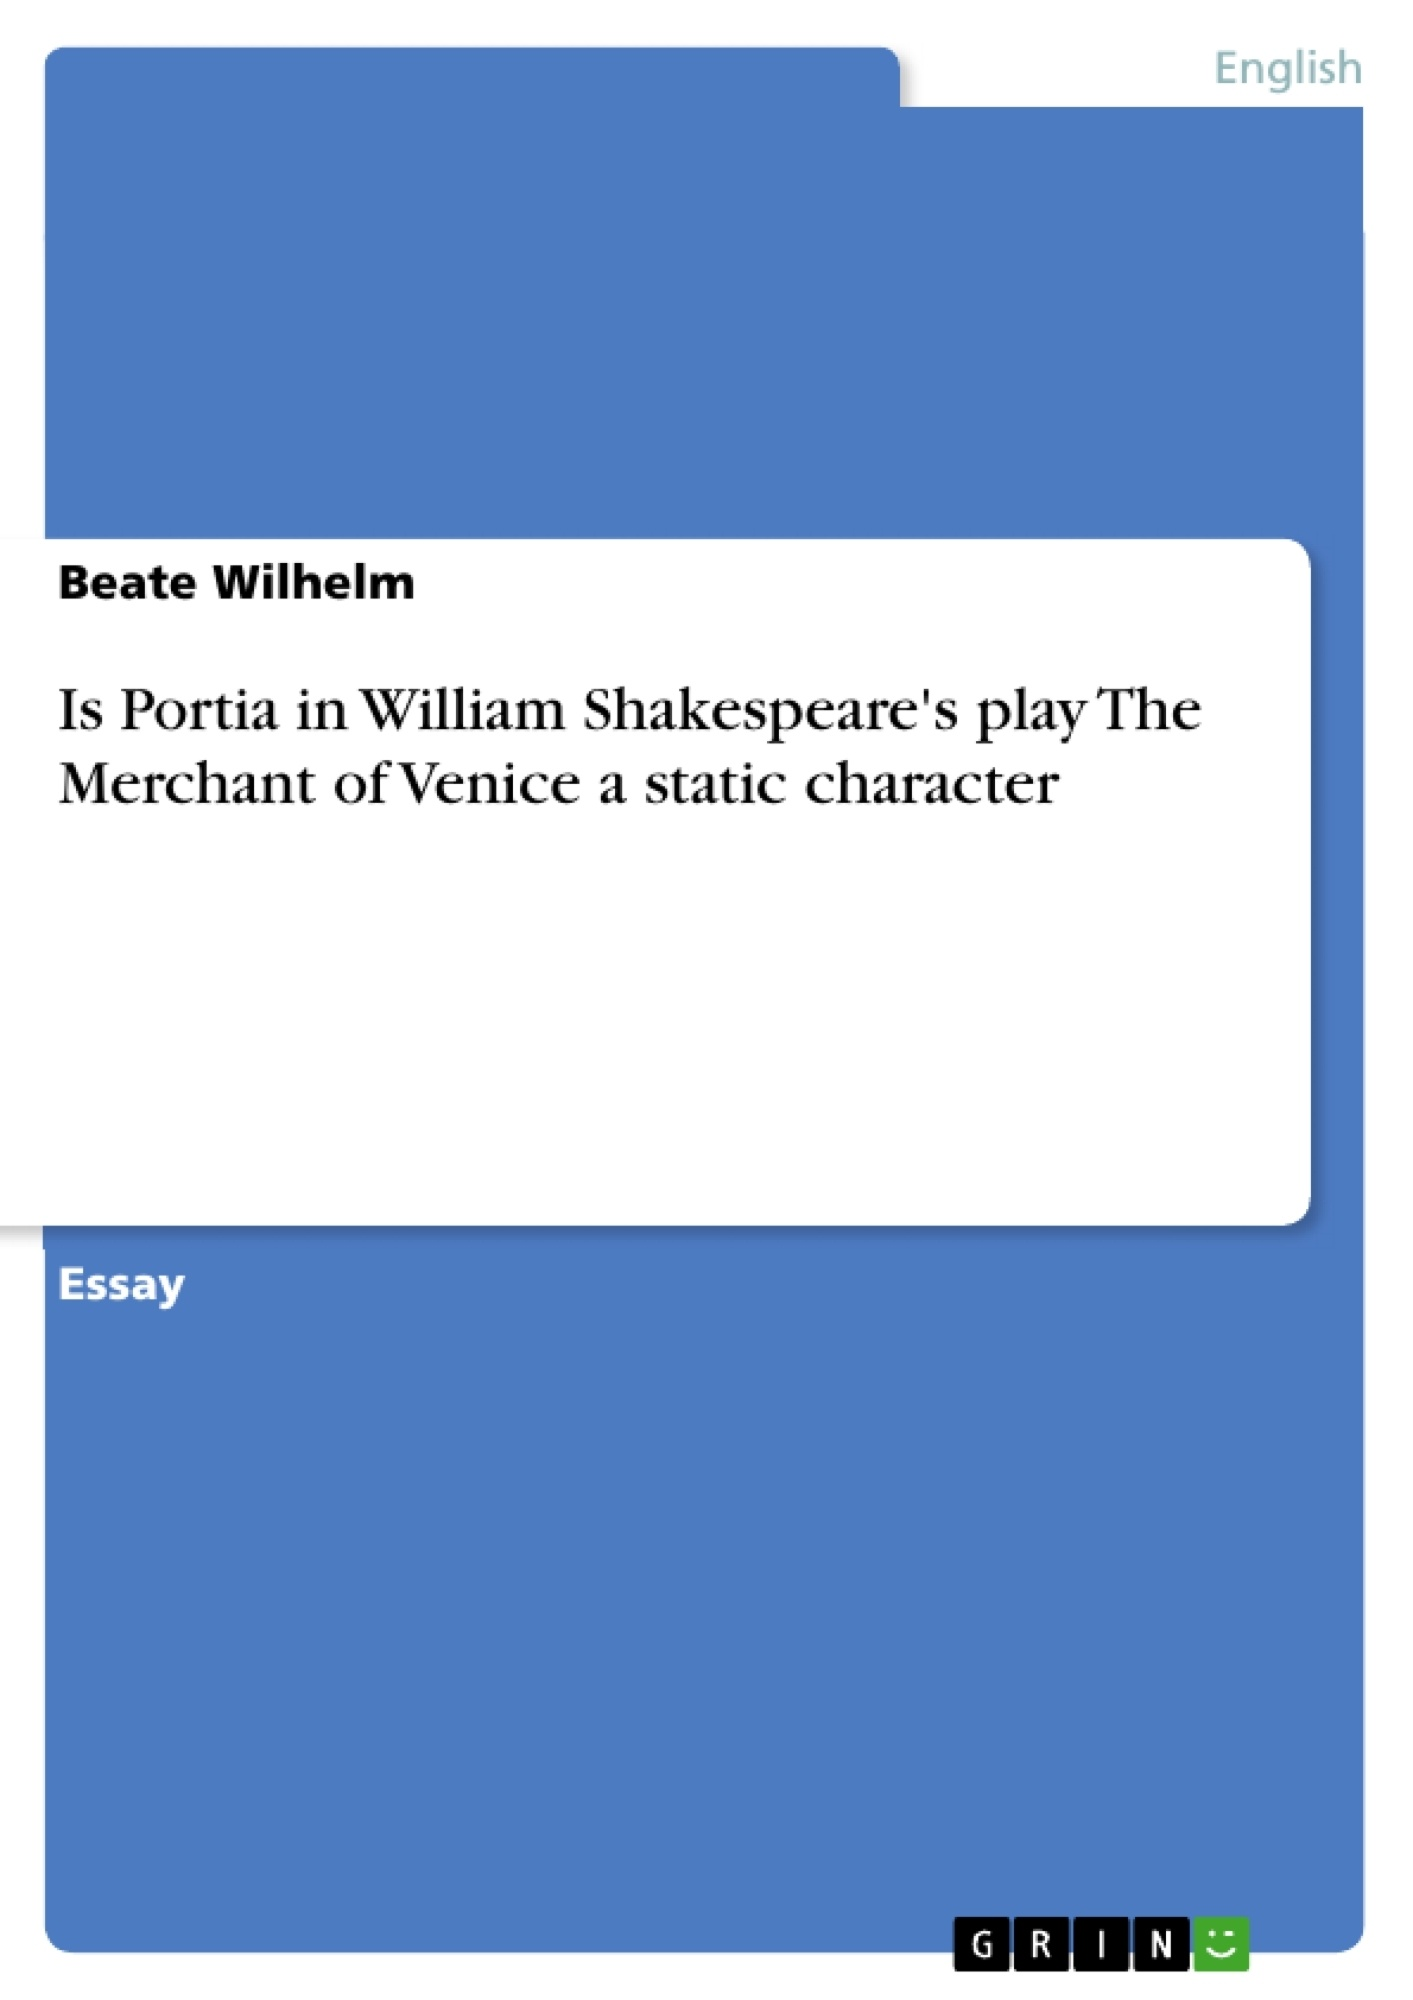 Is Portia In William Shakespeares Play The Merchant Of Venice A  Upload Your Own Papers Earn Money And Win An Iphone X